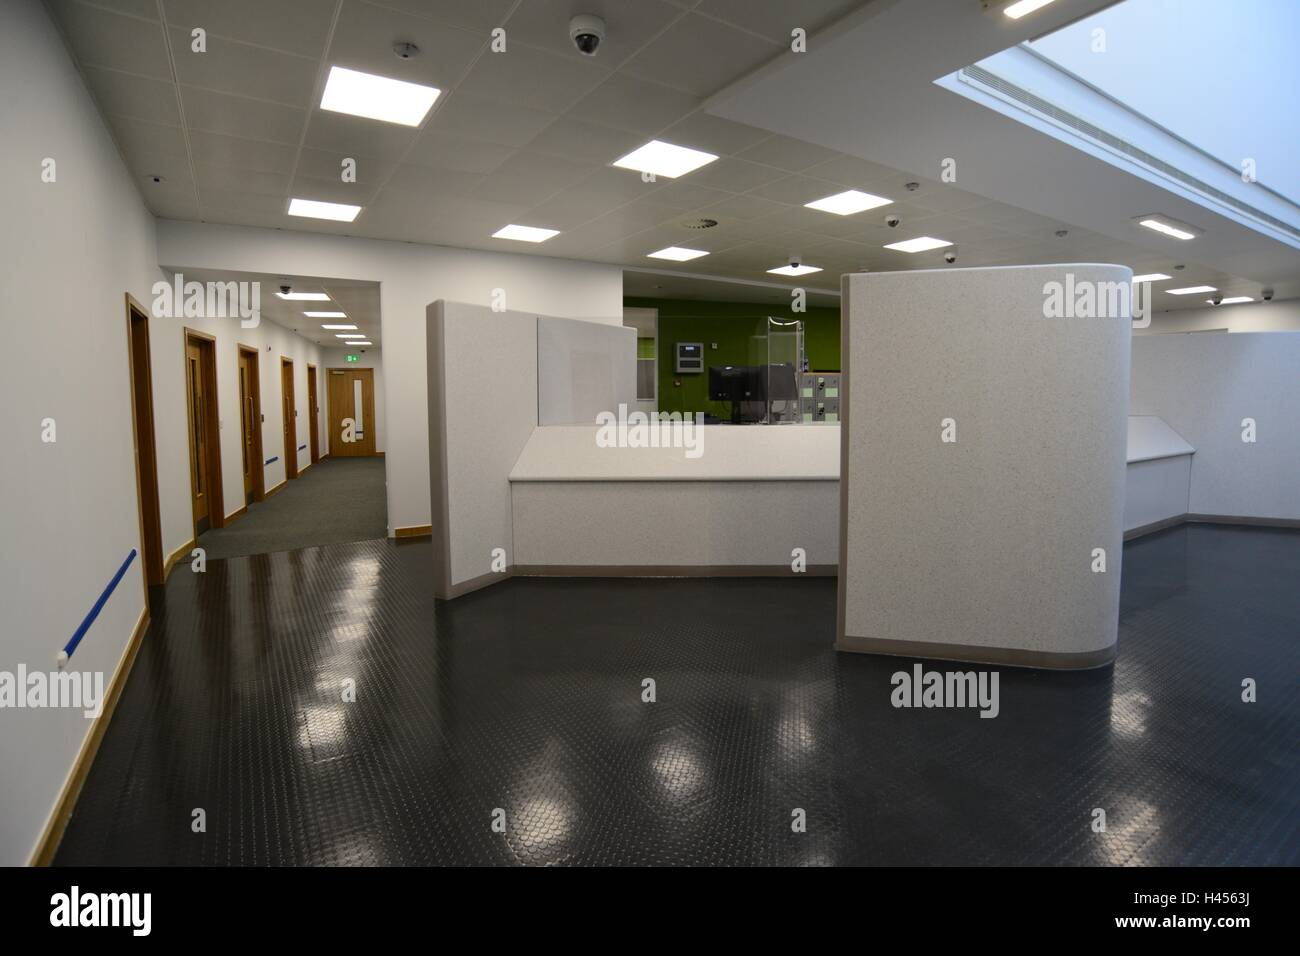 Inside the new custody suite at Barnsley Police Station, South Yorkshire, UK. - Stock Image